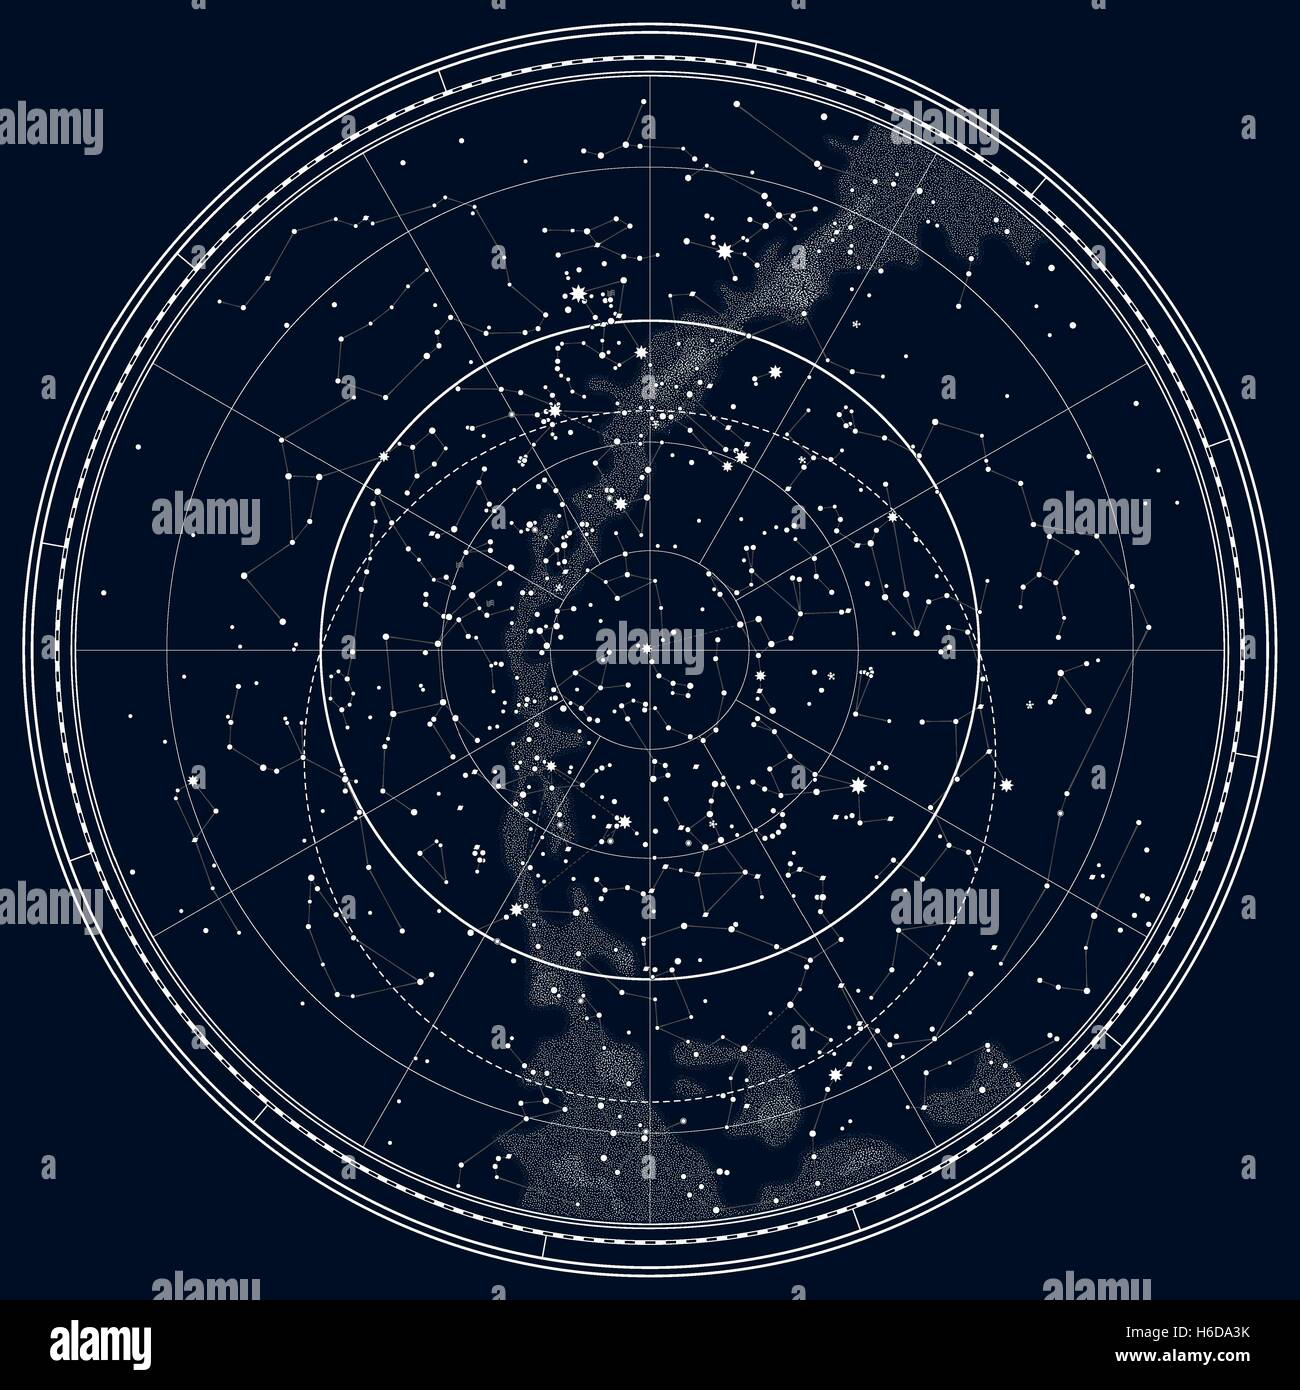 Astronomical Celestial Map Of The Northern Hemisphere Detailed - Night sky map northern hemisphere